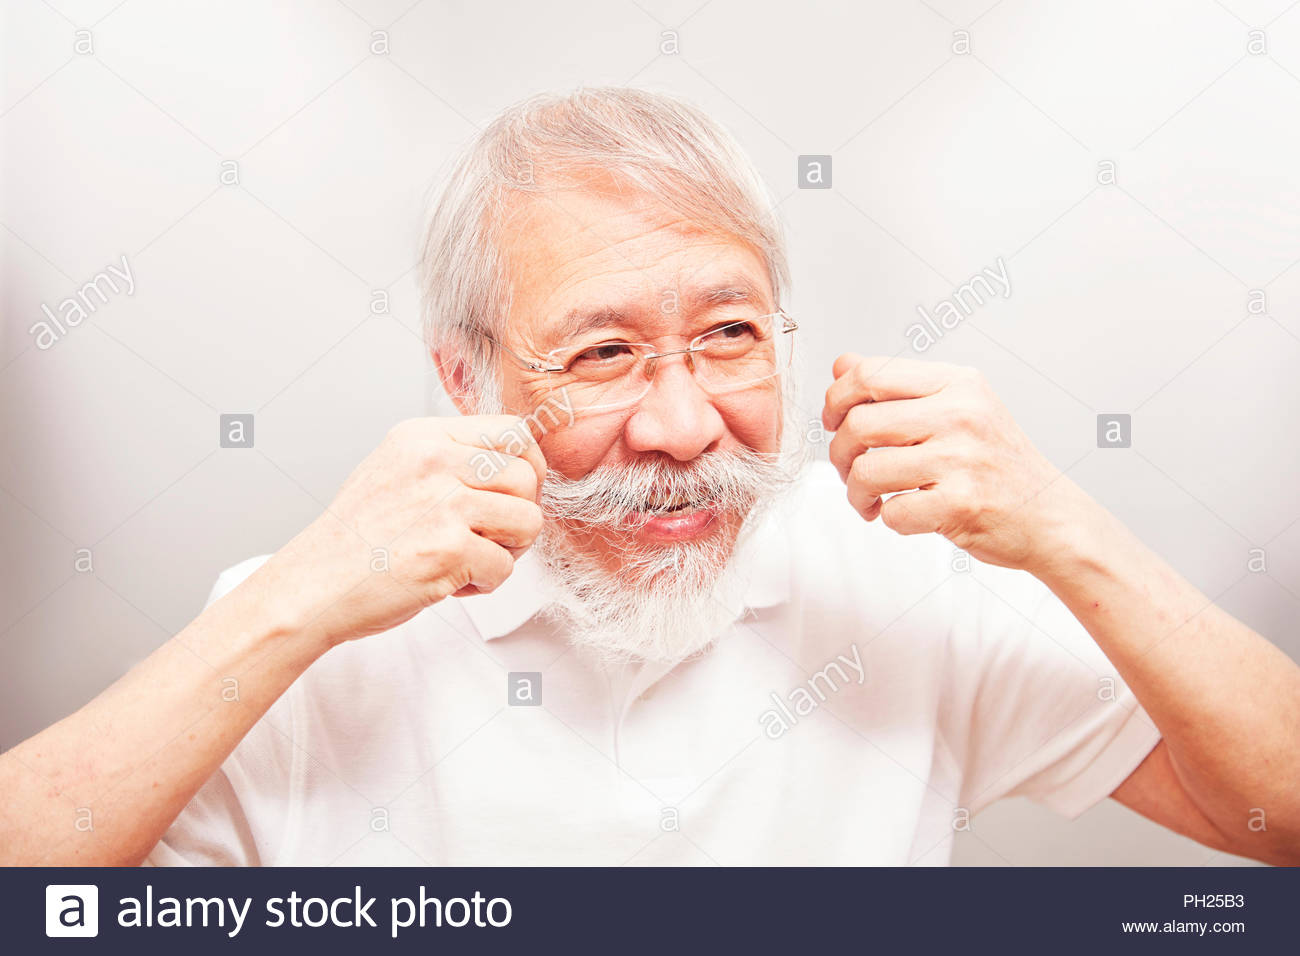 Senior man twirling his moustache - Stock Image